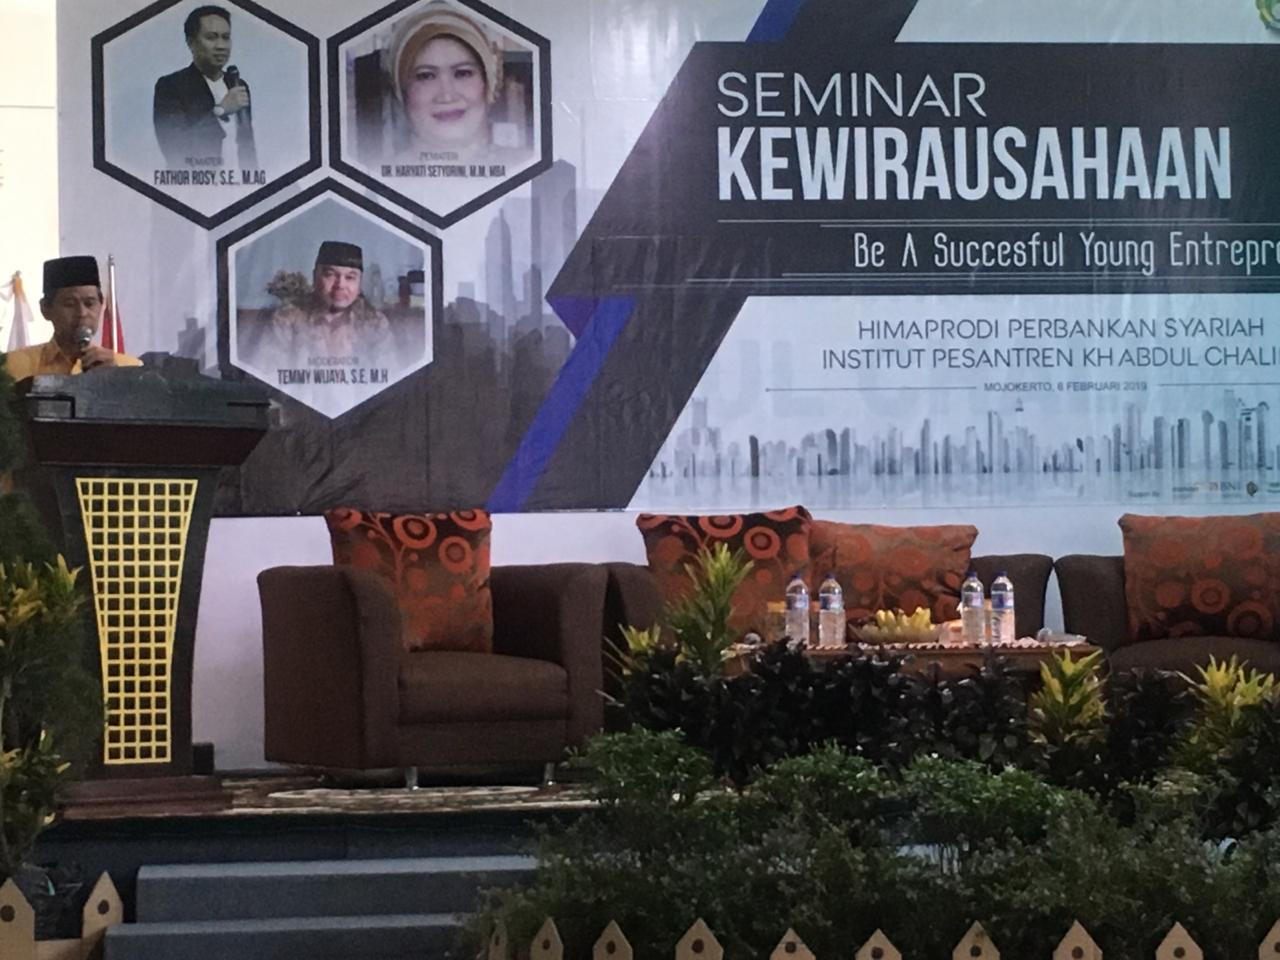 Seminar kewirausahaan Program Studi Perbankan Syariah:  Be A Successful Young Entrepreneur